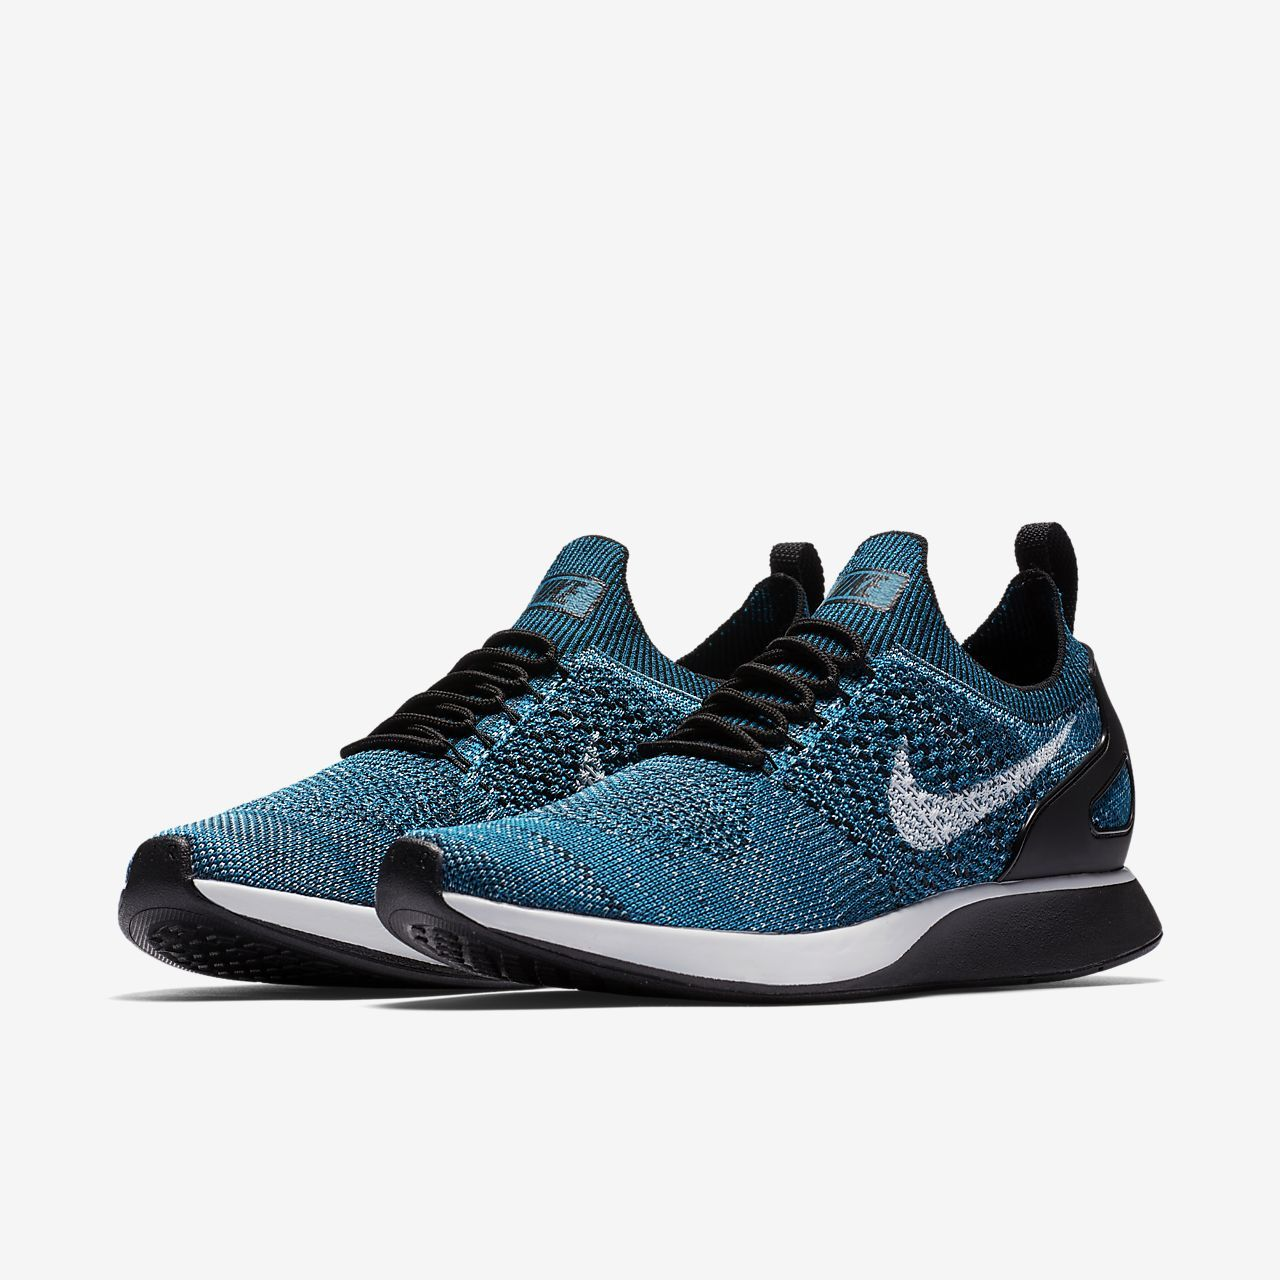 watch b9de5 58144 Emporium of Tings. Web Magazine. - https   drwong.live. Available Now  Nike  Shox Gravity Game Royal. Best Trail Running ShoesRunning ...